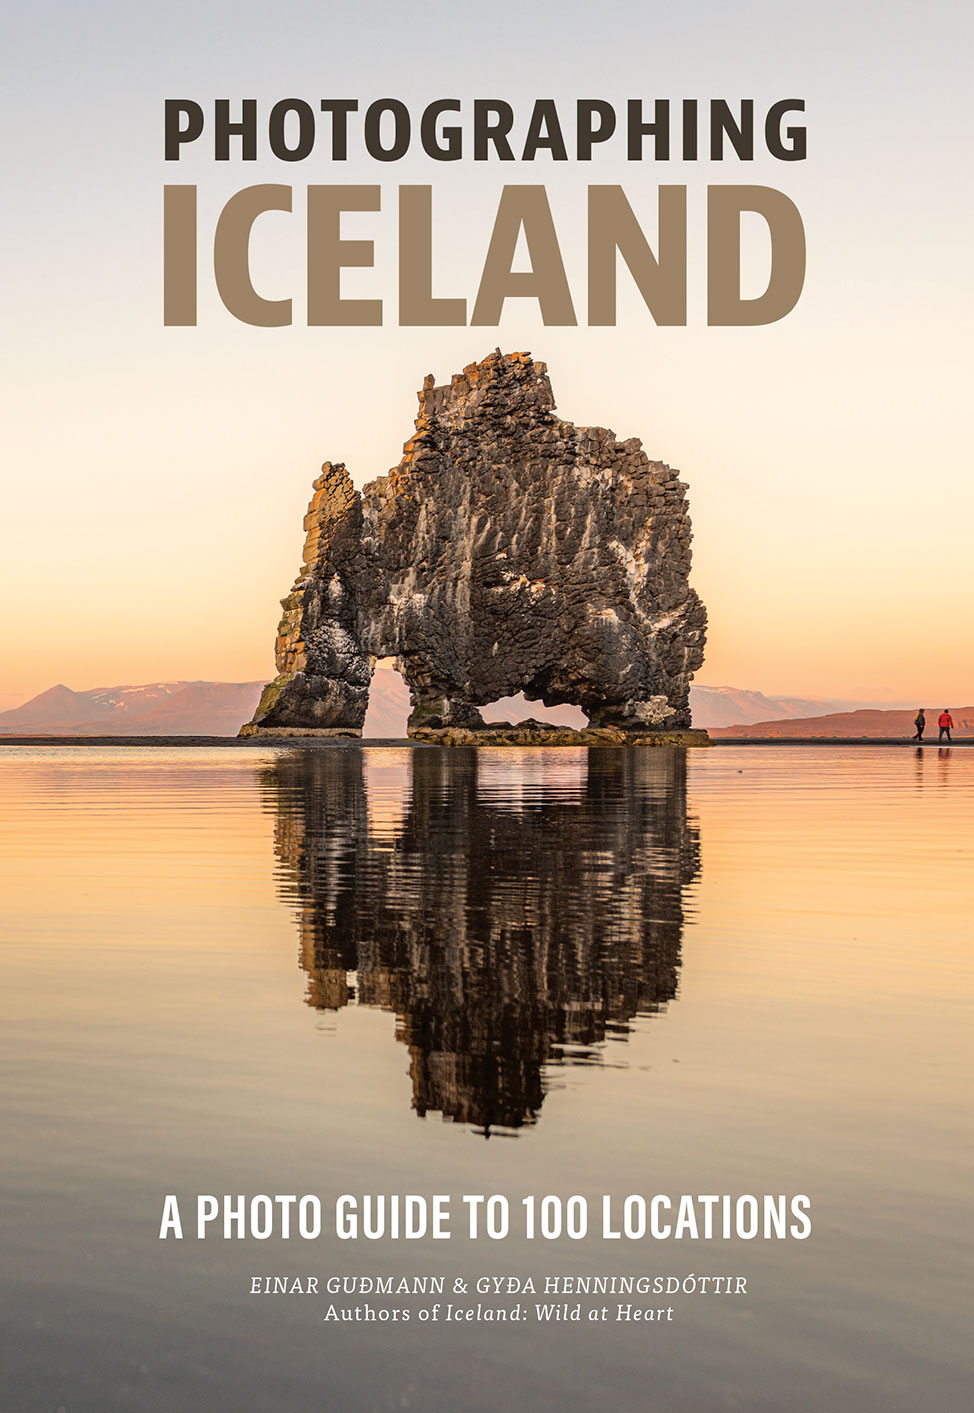 Photographing Iceland